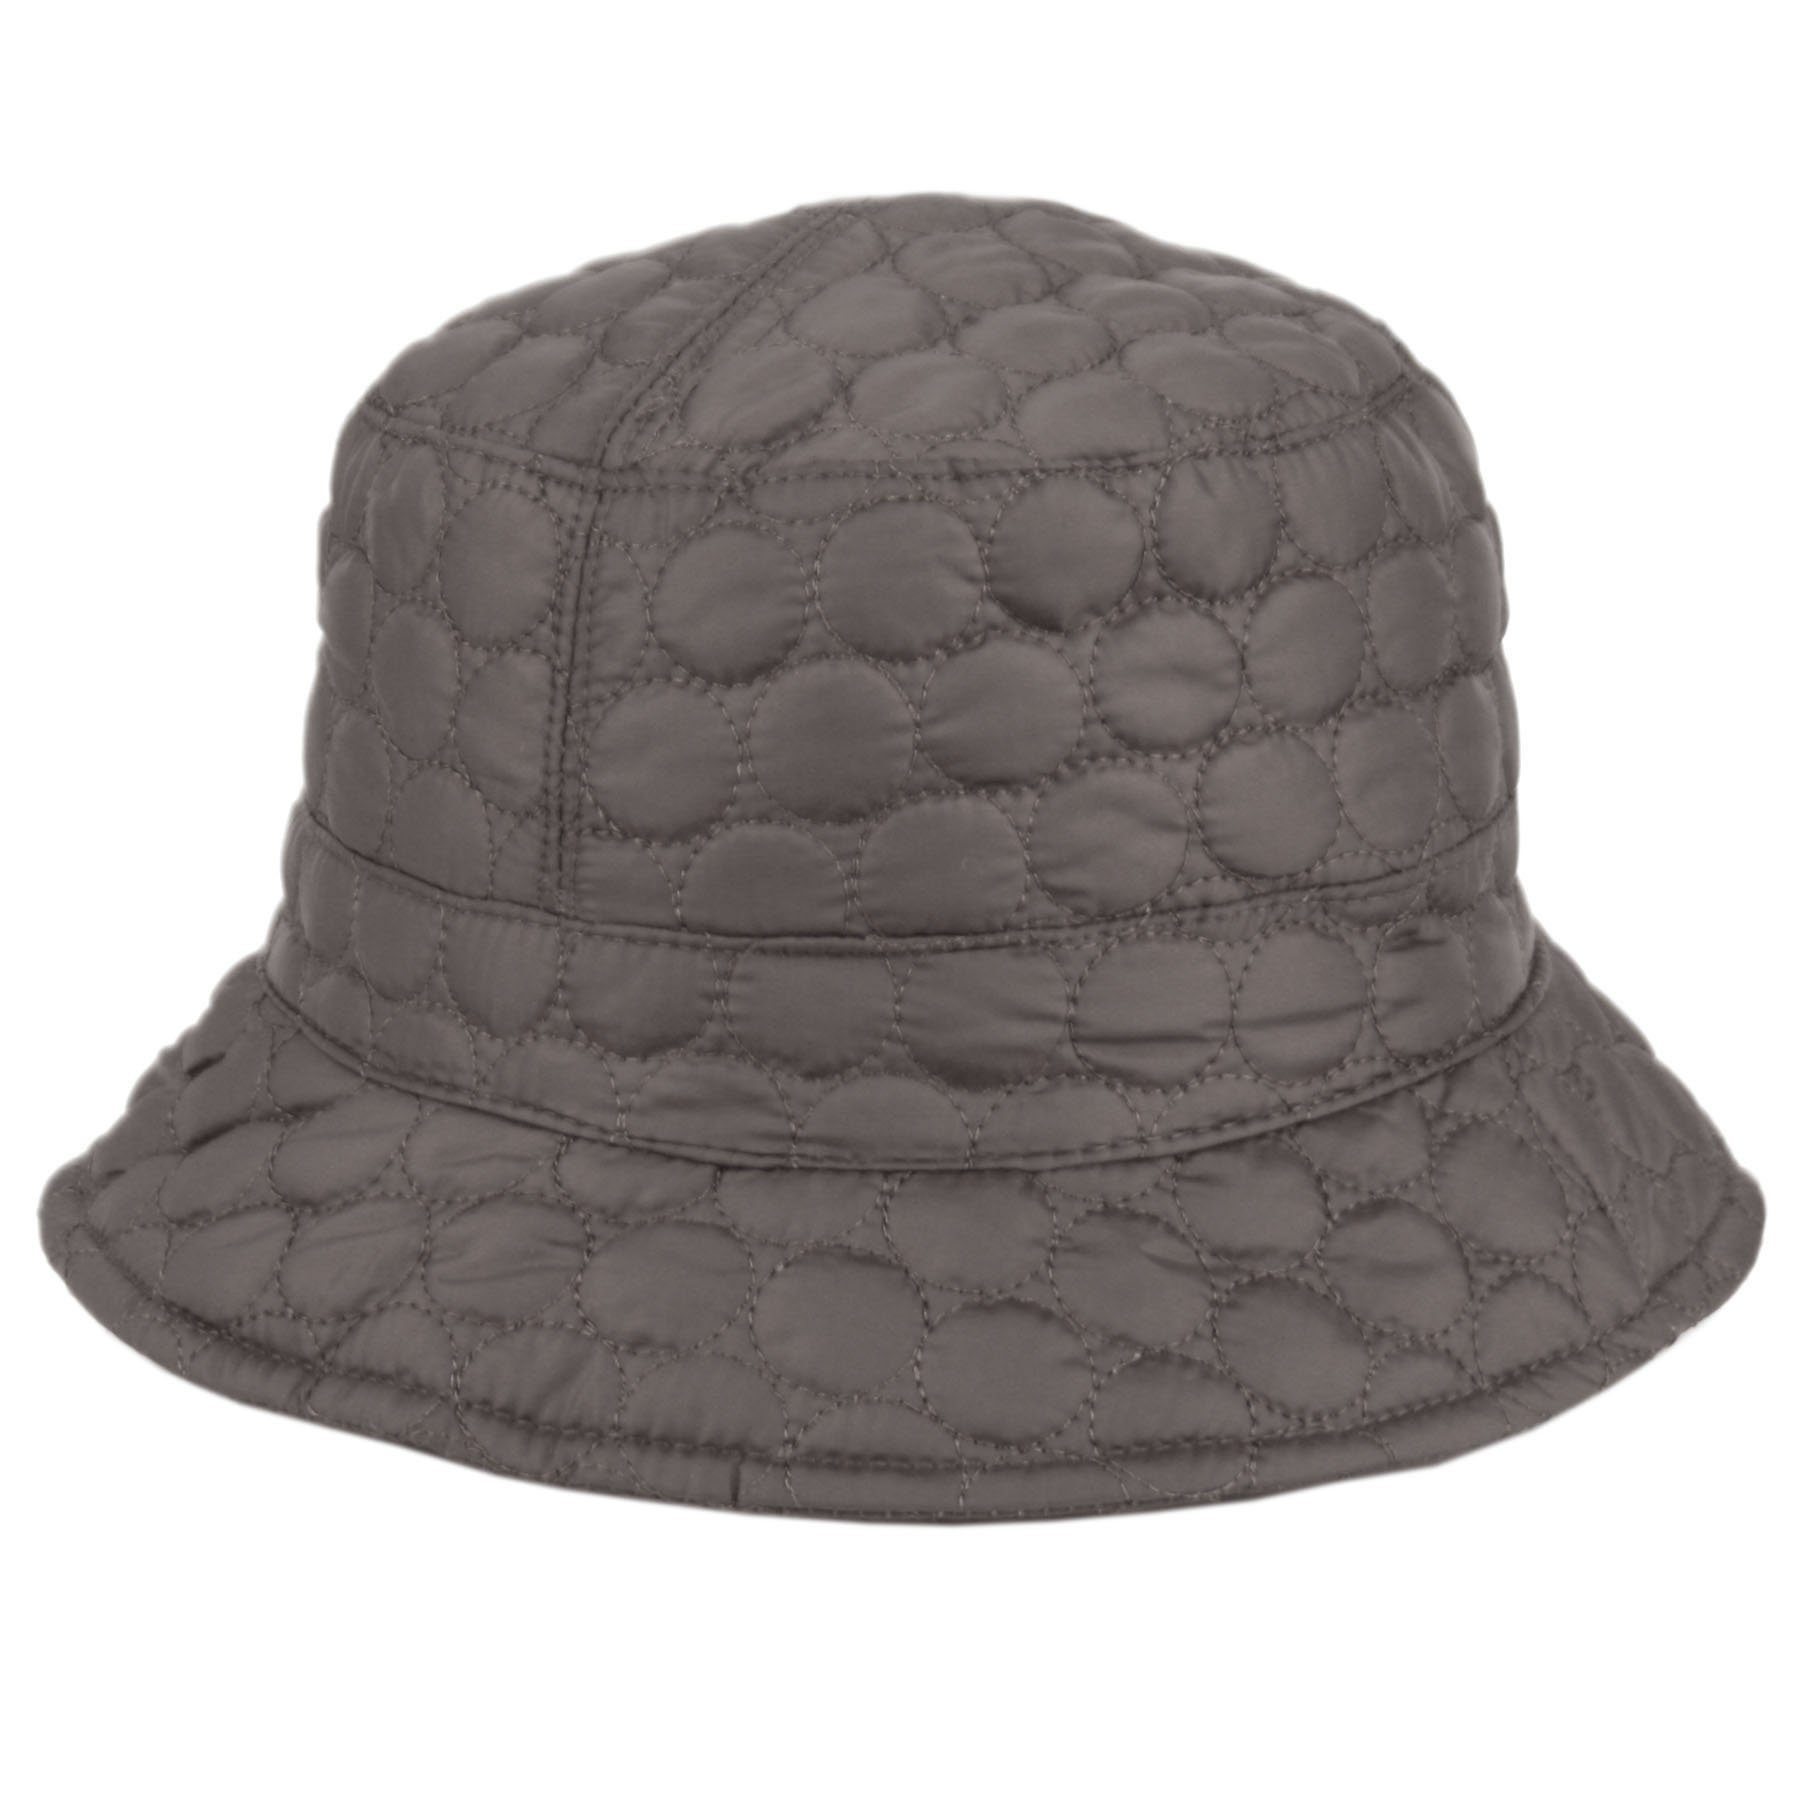 CL2396 Foldable Water Repellent Quilted Rain Hat w/ Adjustable Drawstring, Bucket Hat (GRAY)